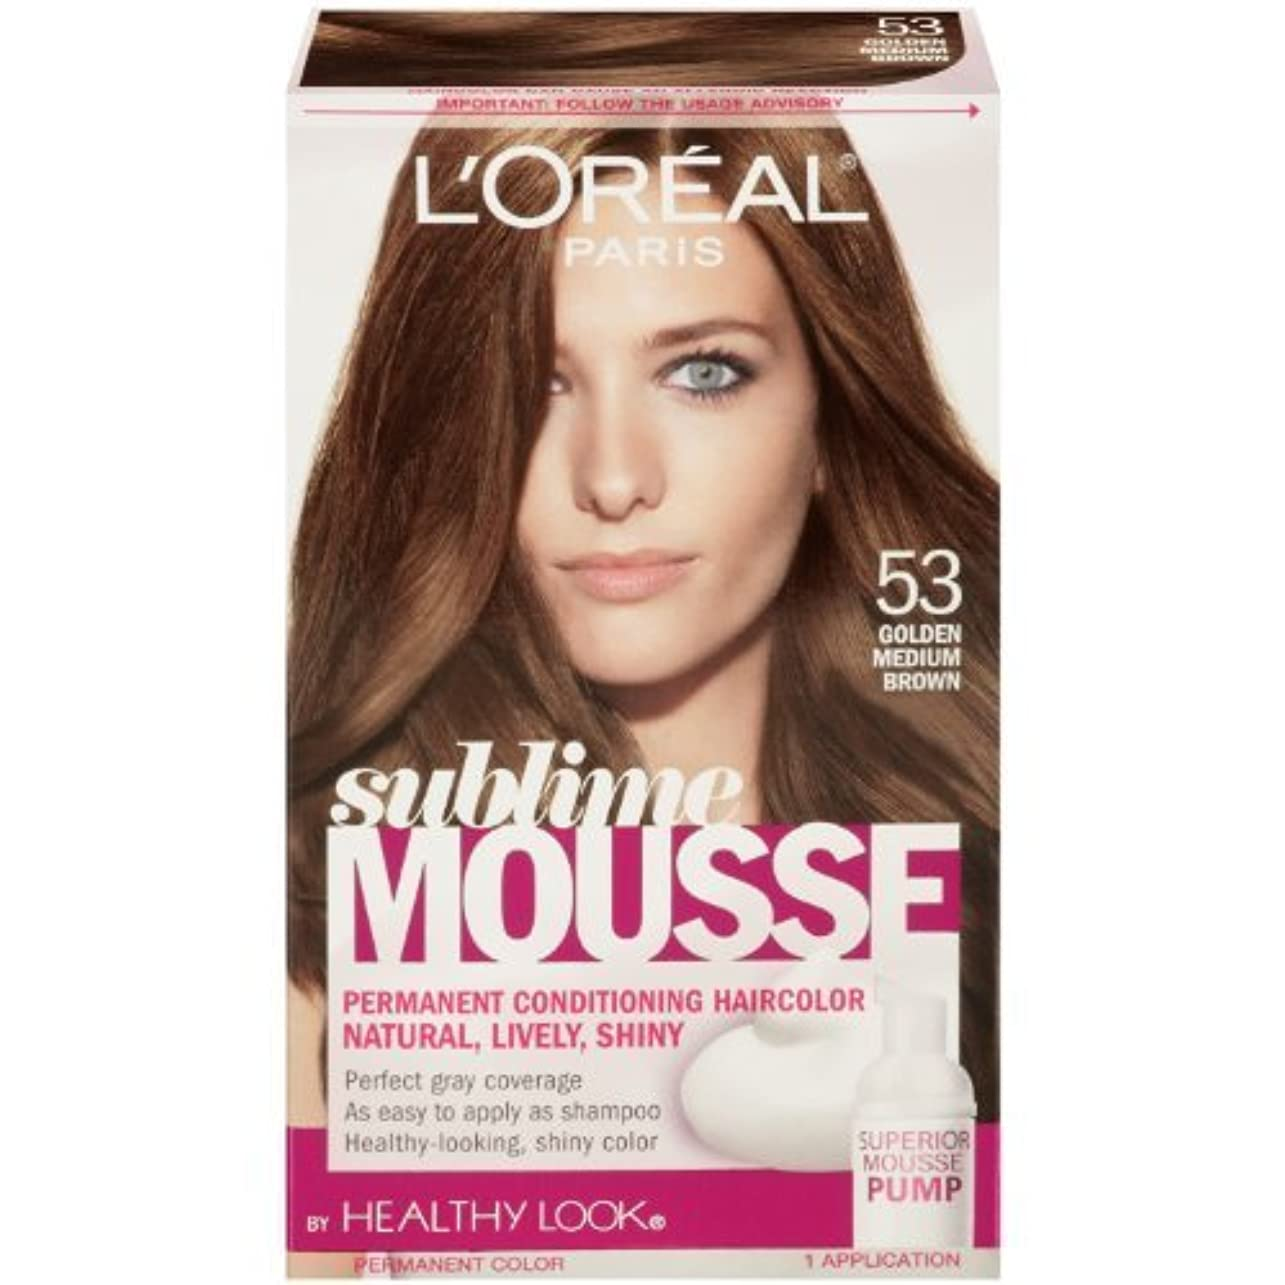 動員する襟軸L'Oreal Paris Sublime Mousse by Healthy Look Hair Color, 53 Golden Medium Brown by SUBLIME MOUSSE [並行輸入品]